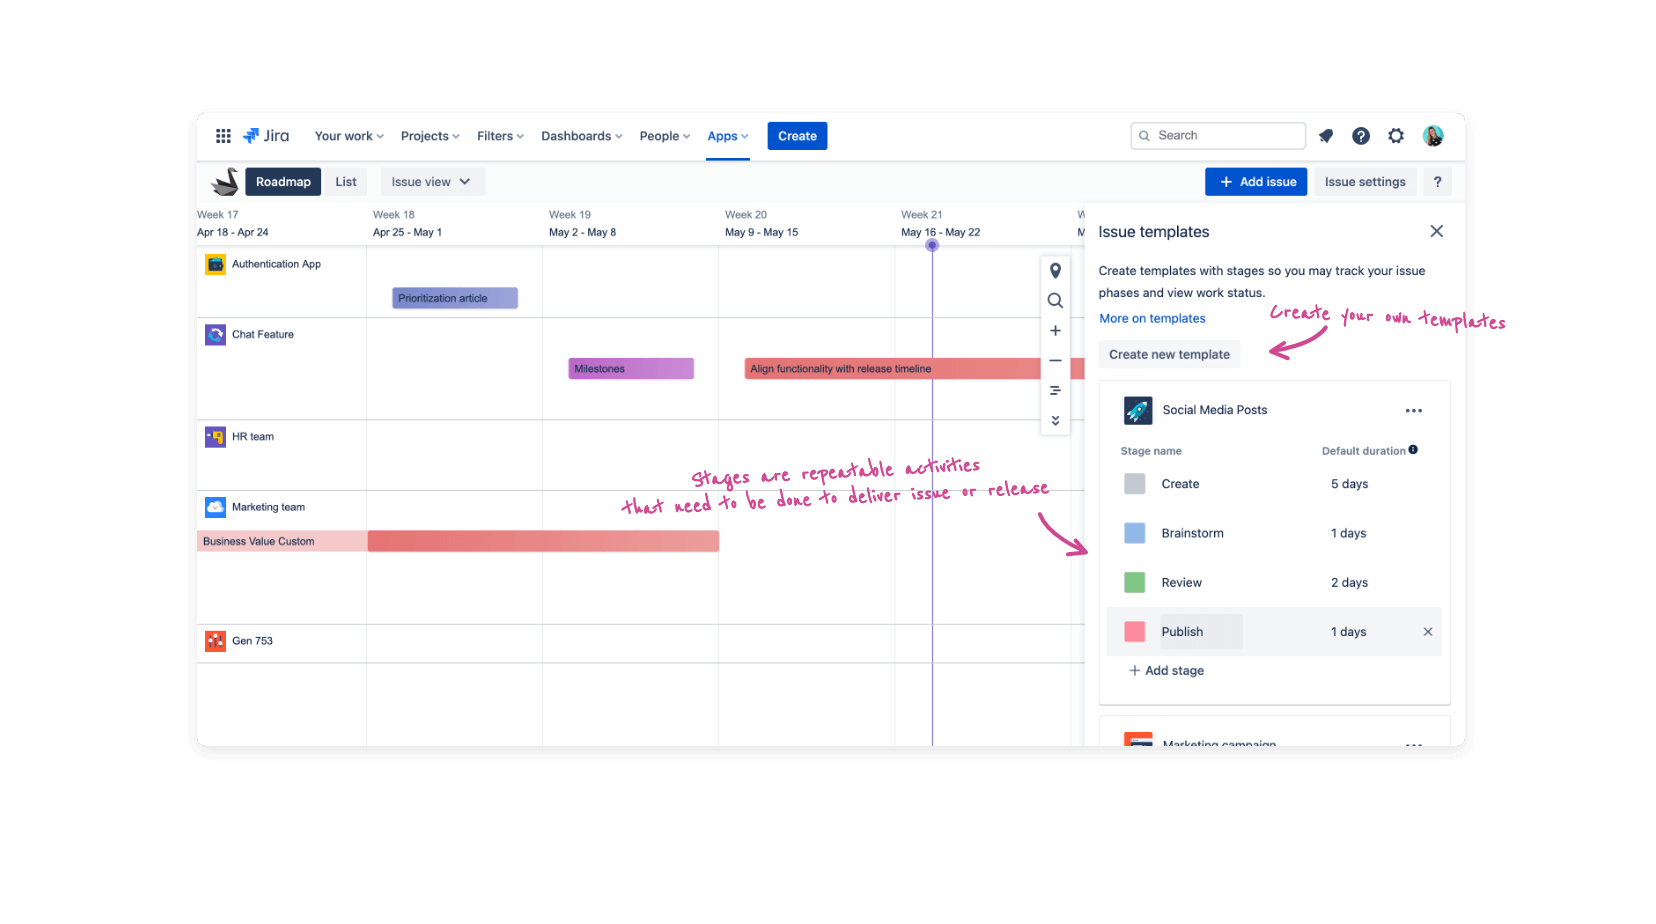 Predefined and custom stage templates in Swanly - Jira roadmap